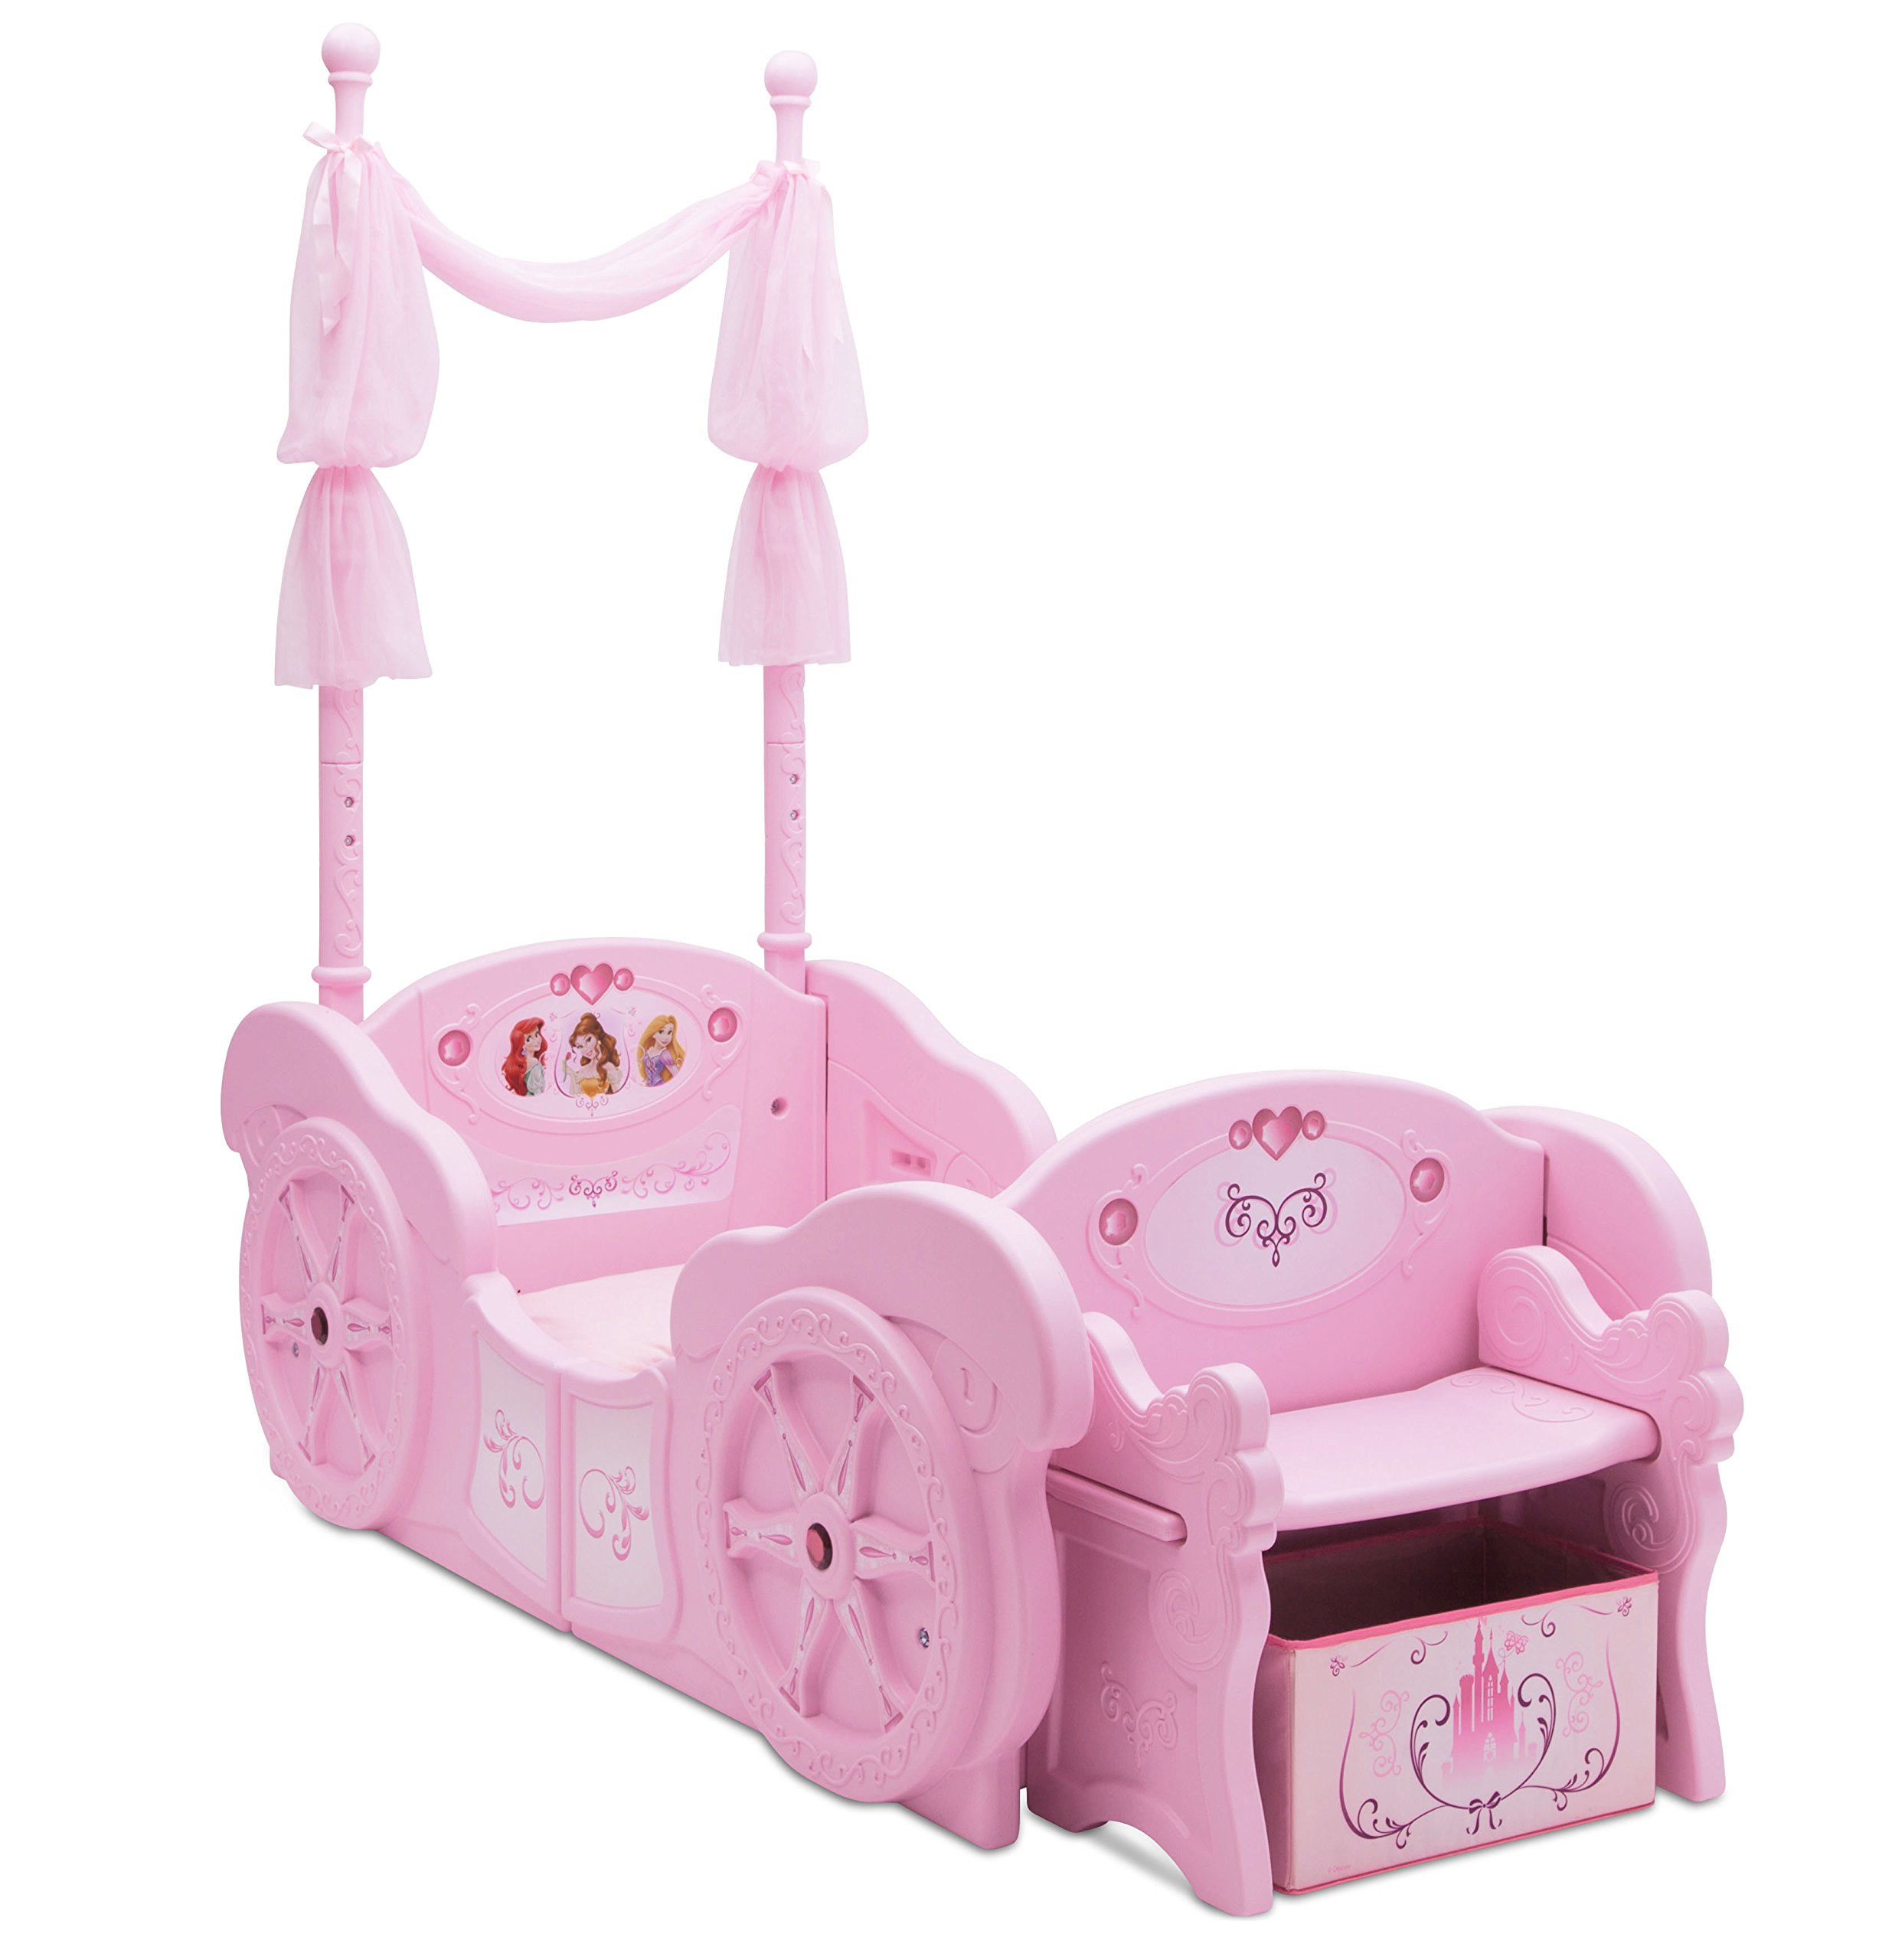 Delta Children Disney Princess Carriage Toddler-to-Twin Bed by Disney